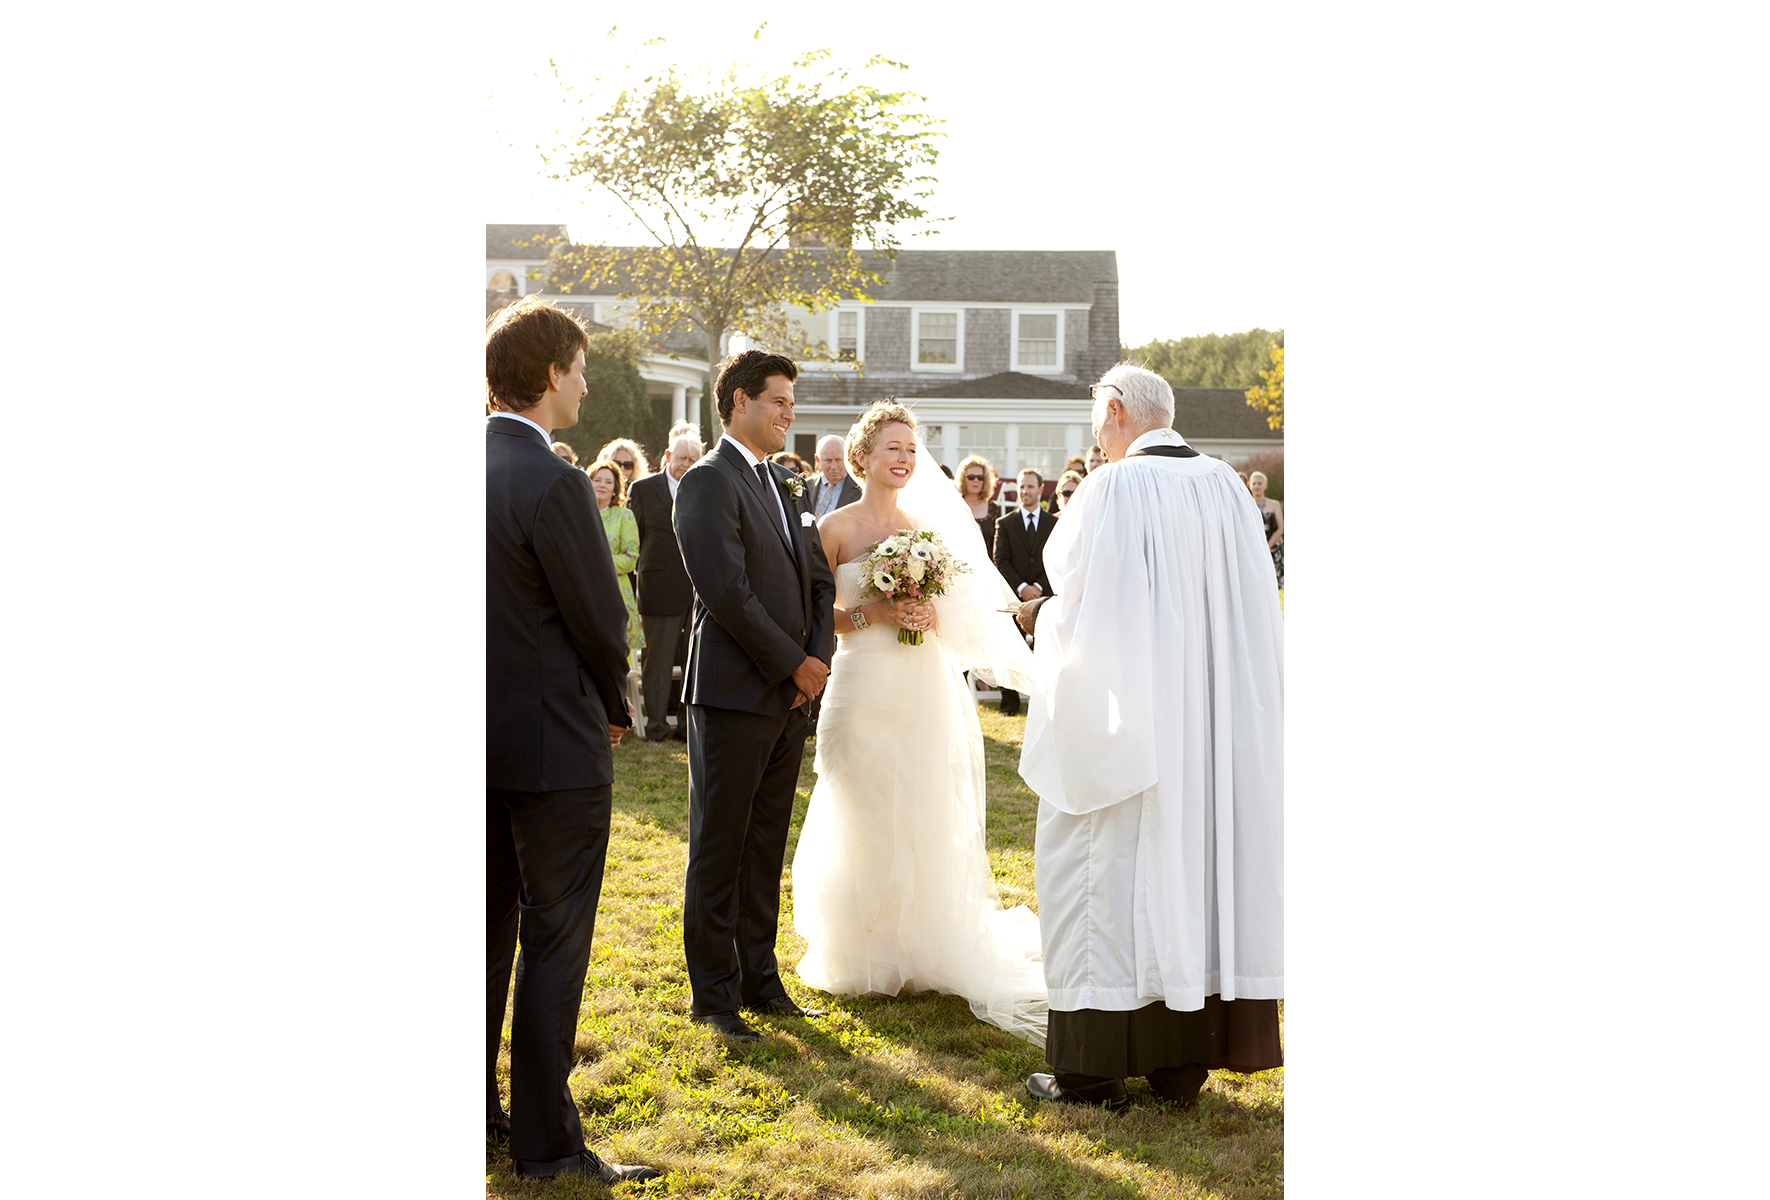 raquelreis_wedding_photography_highlights_019.png